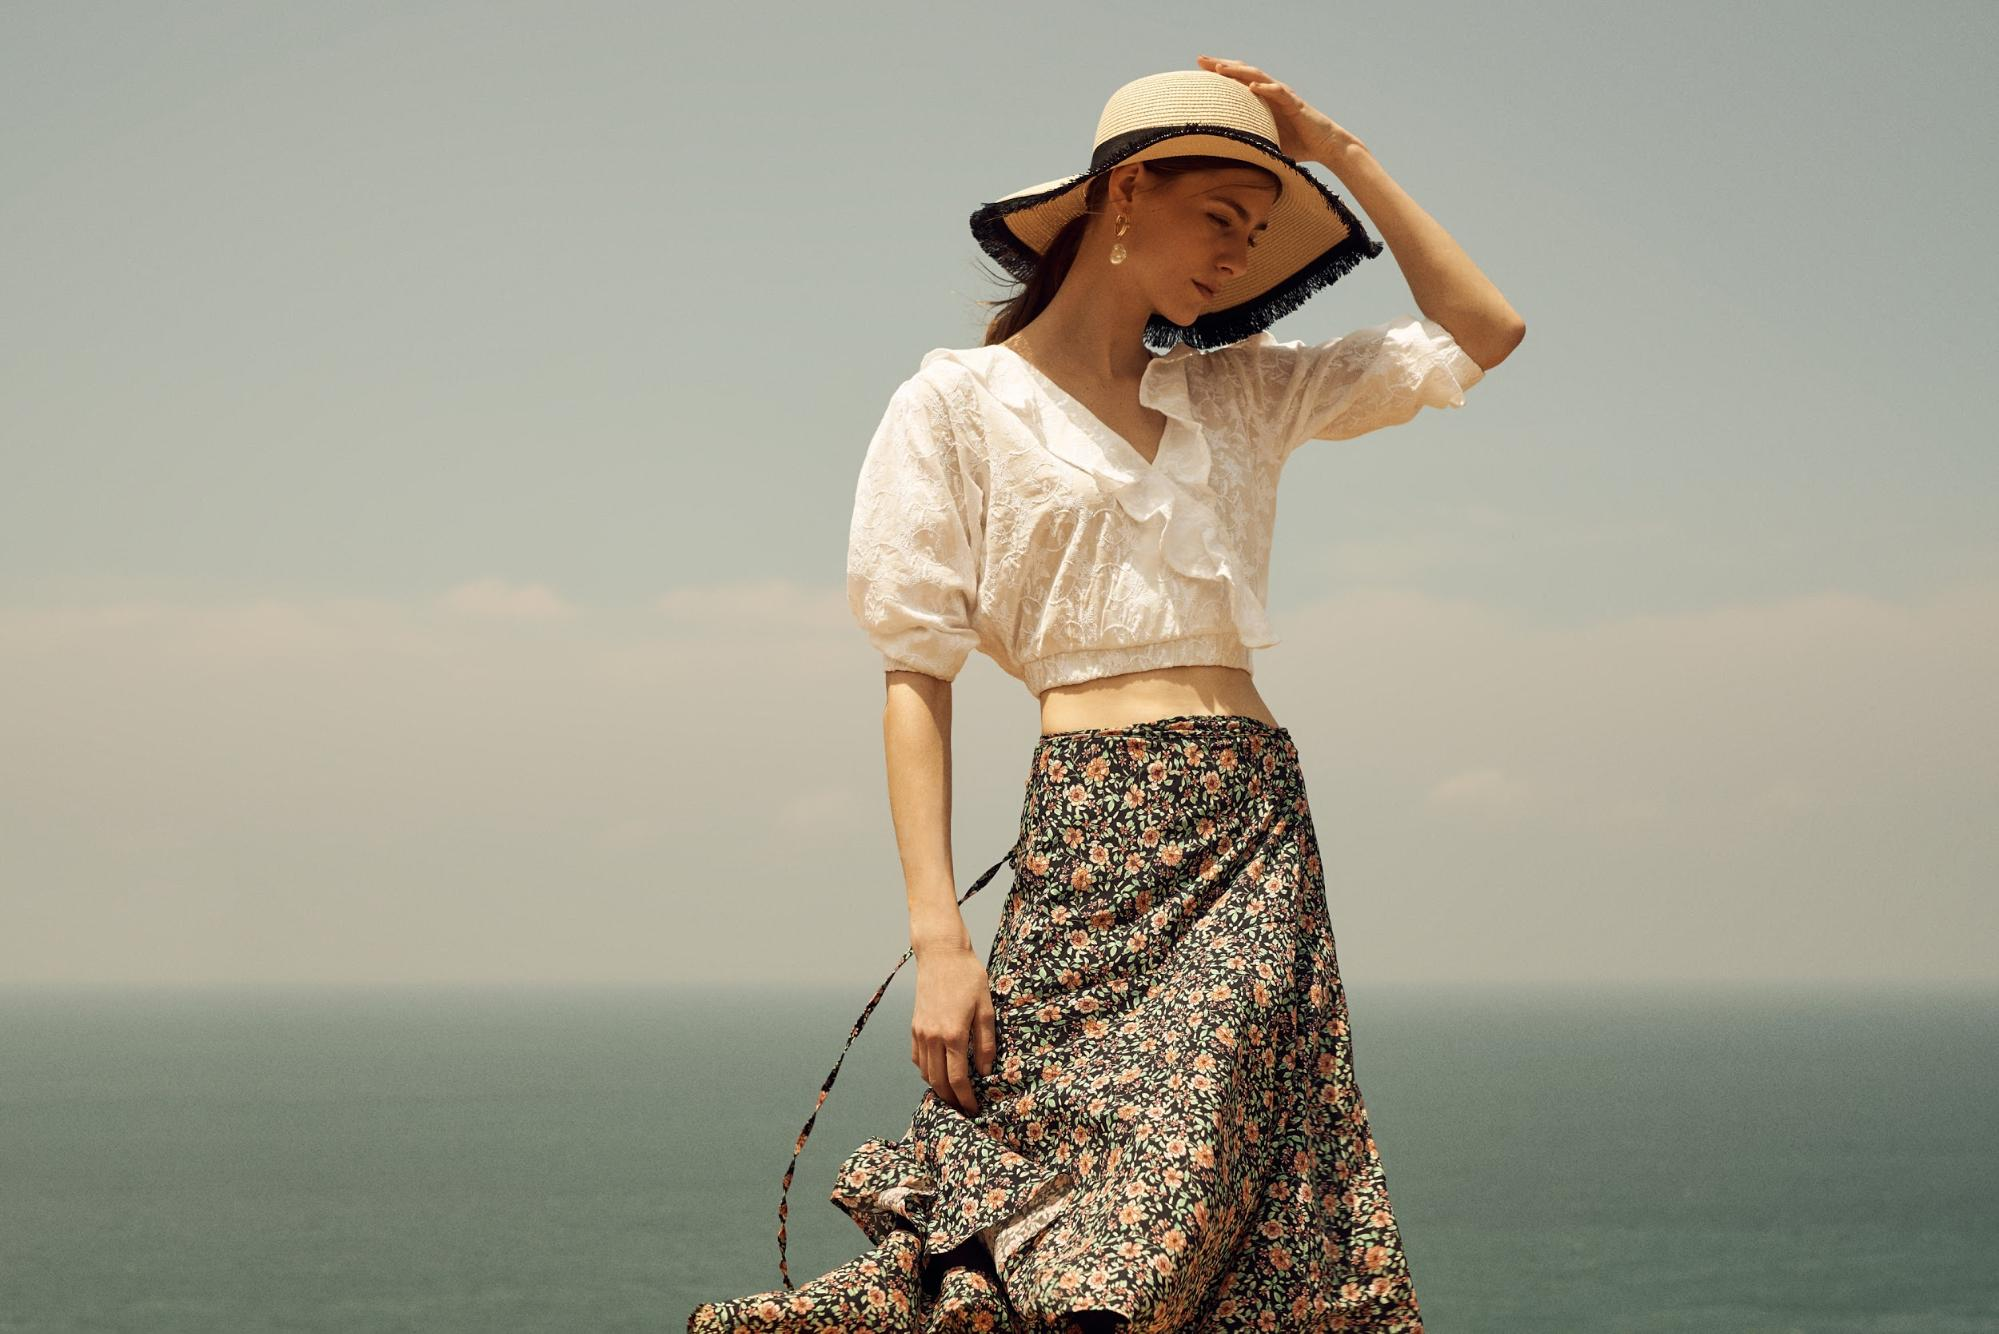 Lady in sun hat at a breezy beach